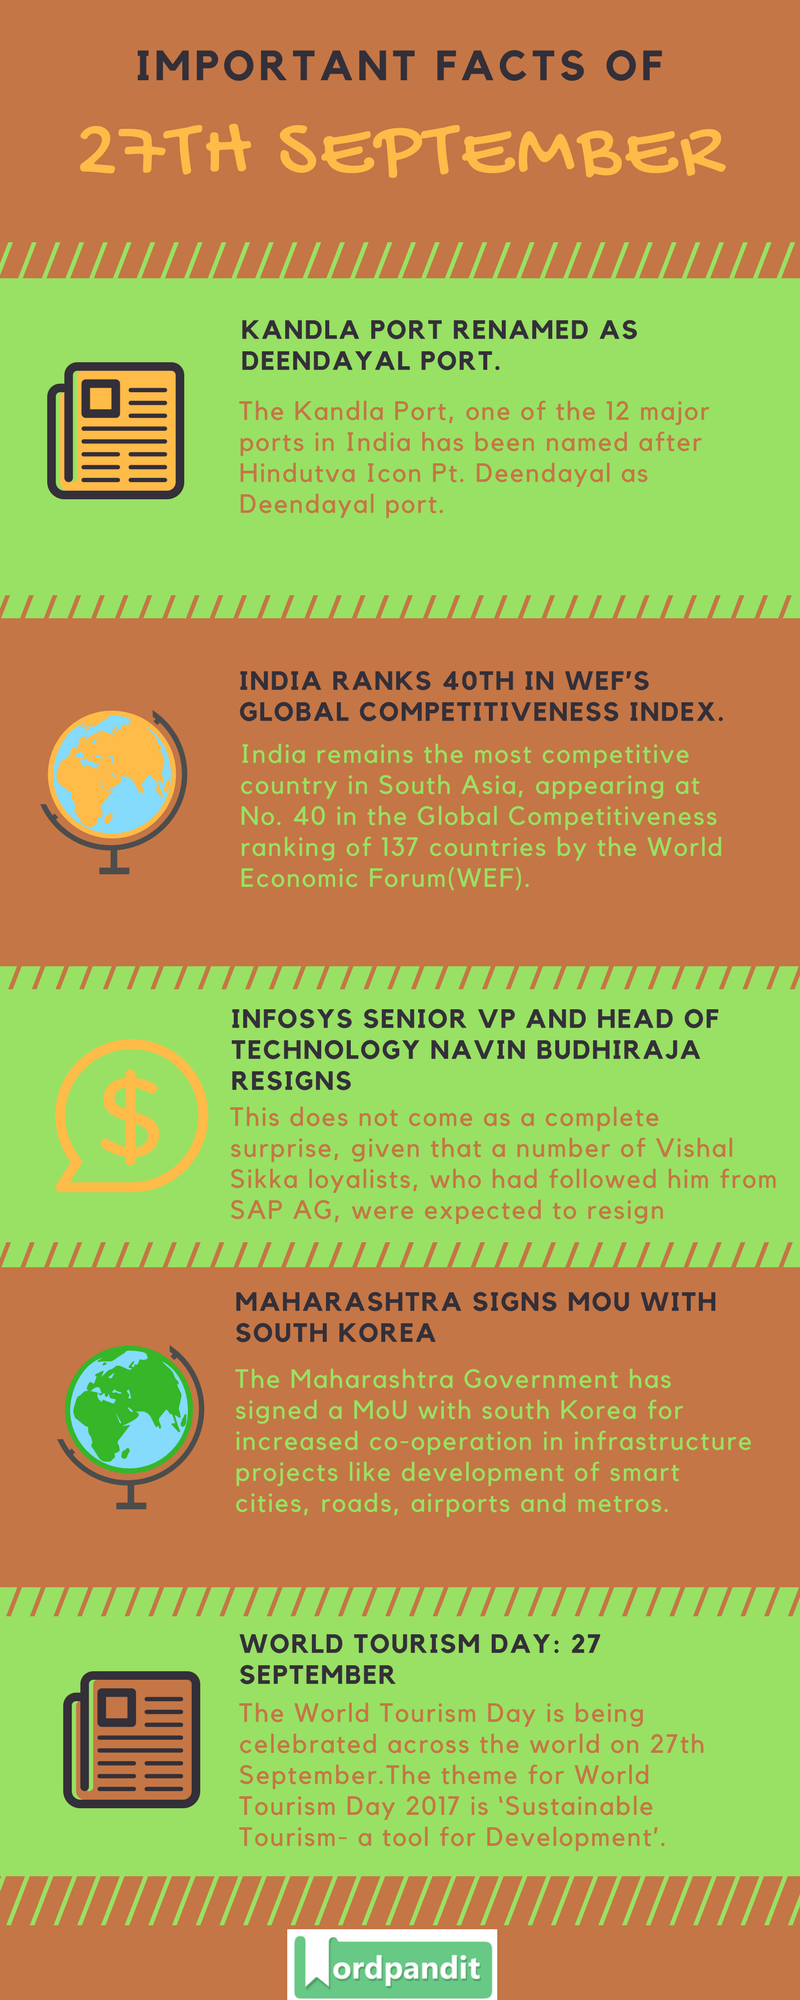 Daily-Current-Affairs-27-september-2017-Current-Affairs-Quiz-september-27-2017-Current-Affairs-Infographic